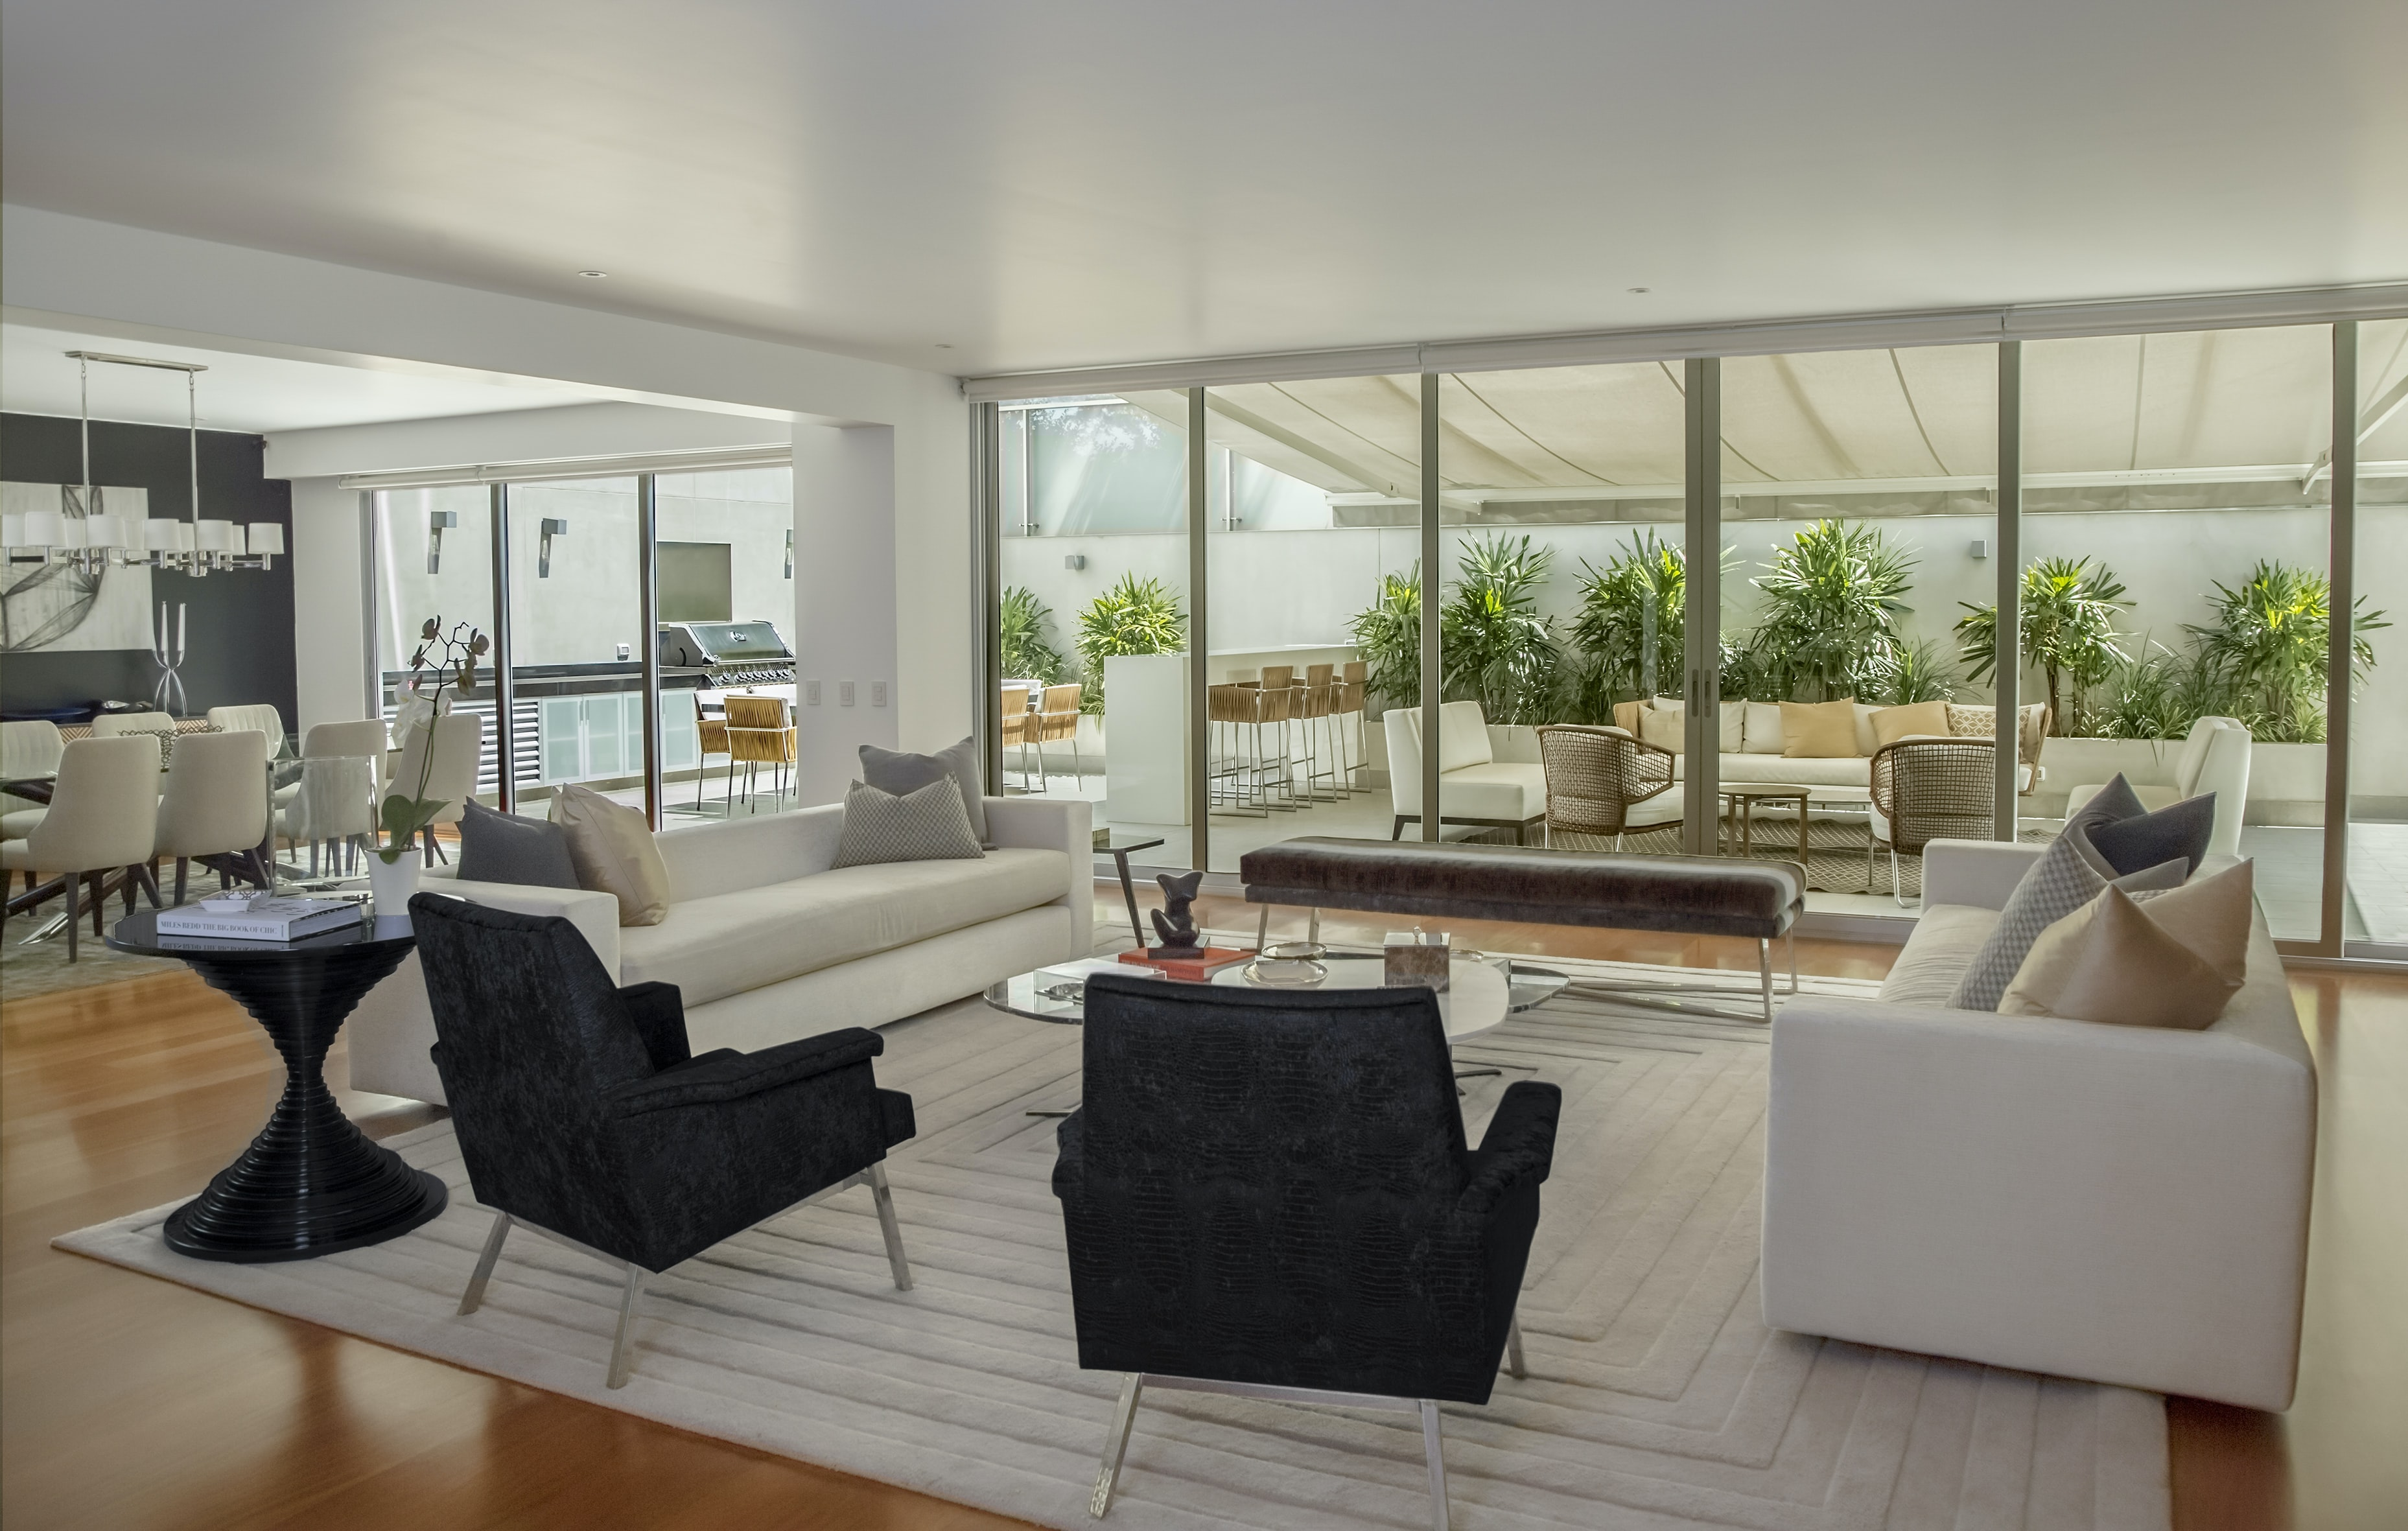 Living and dining room with black and white furniture facing patio with plants and furniture